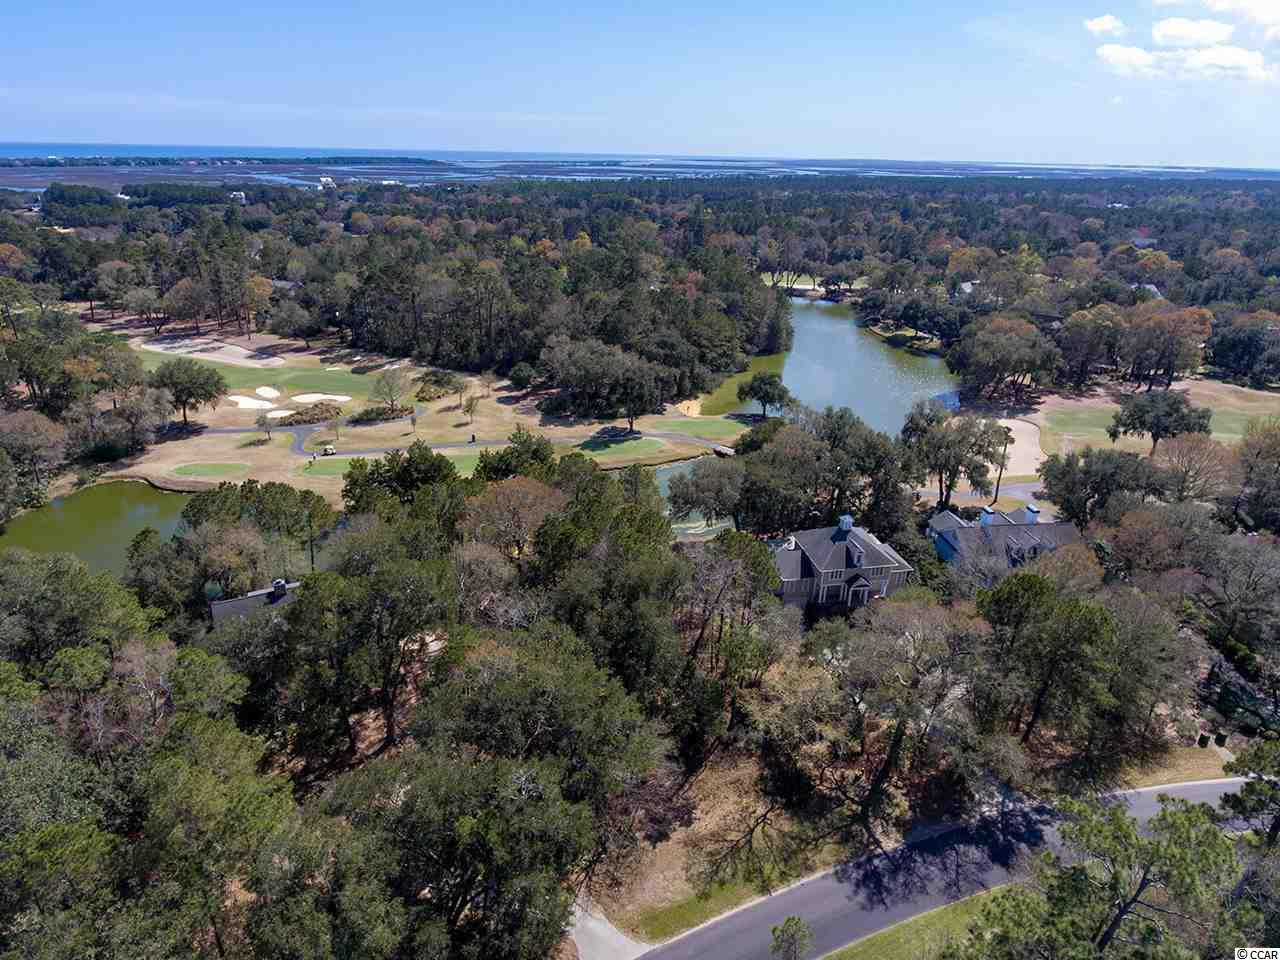 This is a spectacular property with wonderful expansive views overlooking a lovely lake and the 11th green of DeBordieu's famed Pete dye golf course. Centrally located close to all community amenities and priced to sell. Perfect location for either a permanent or second home. Plat on file for architect or contractor.